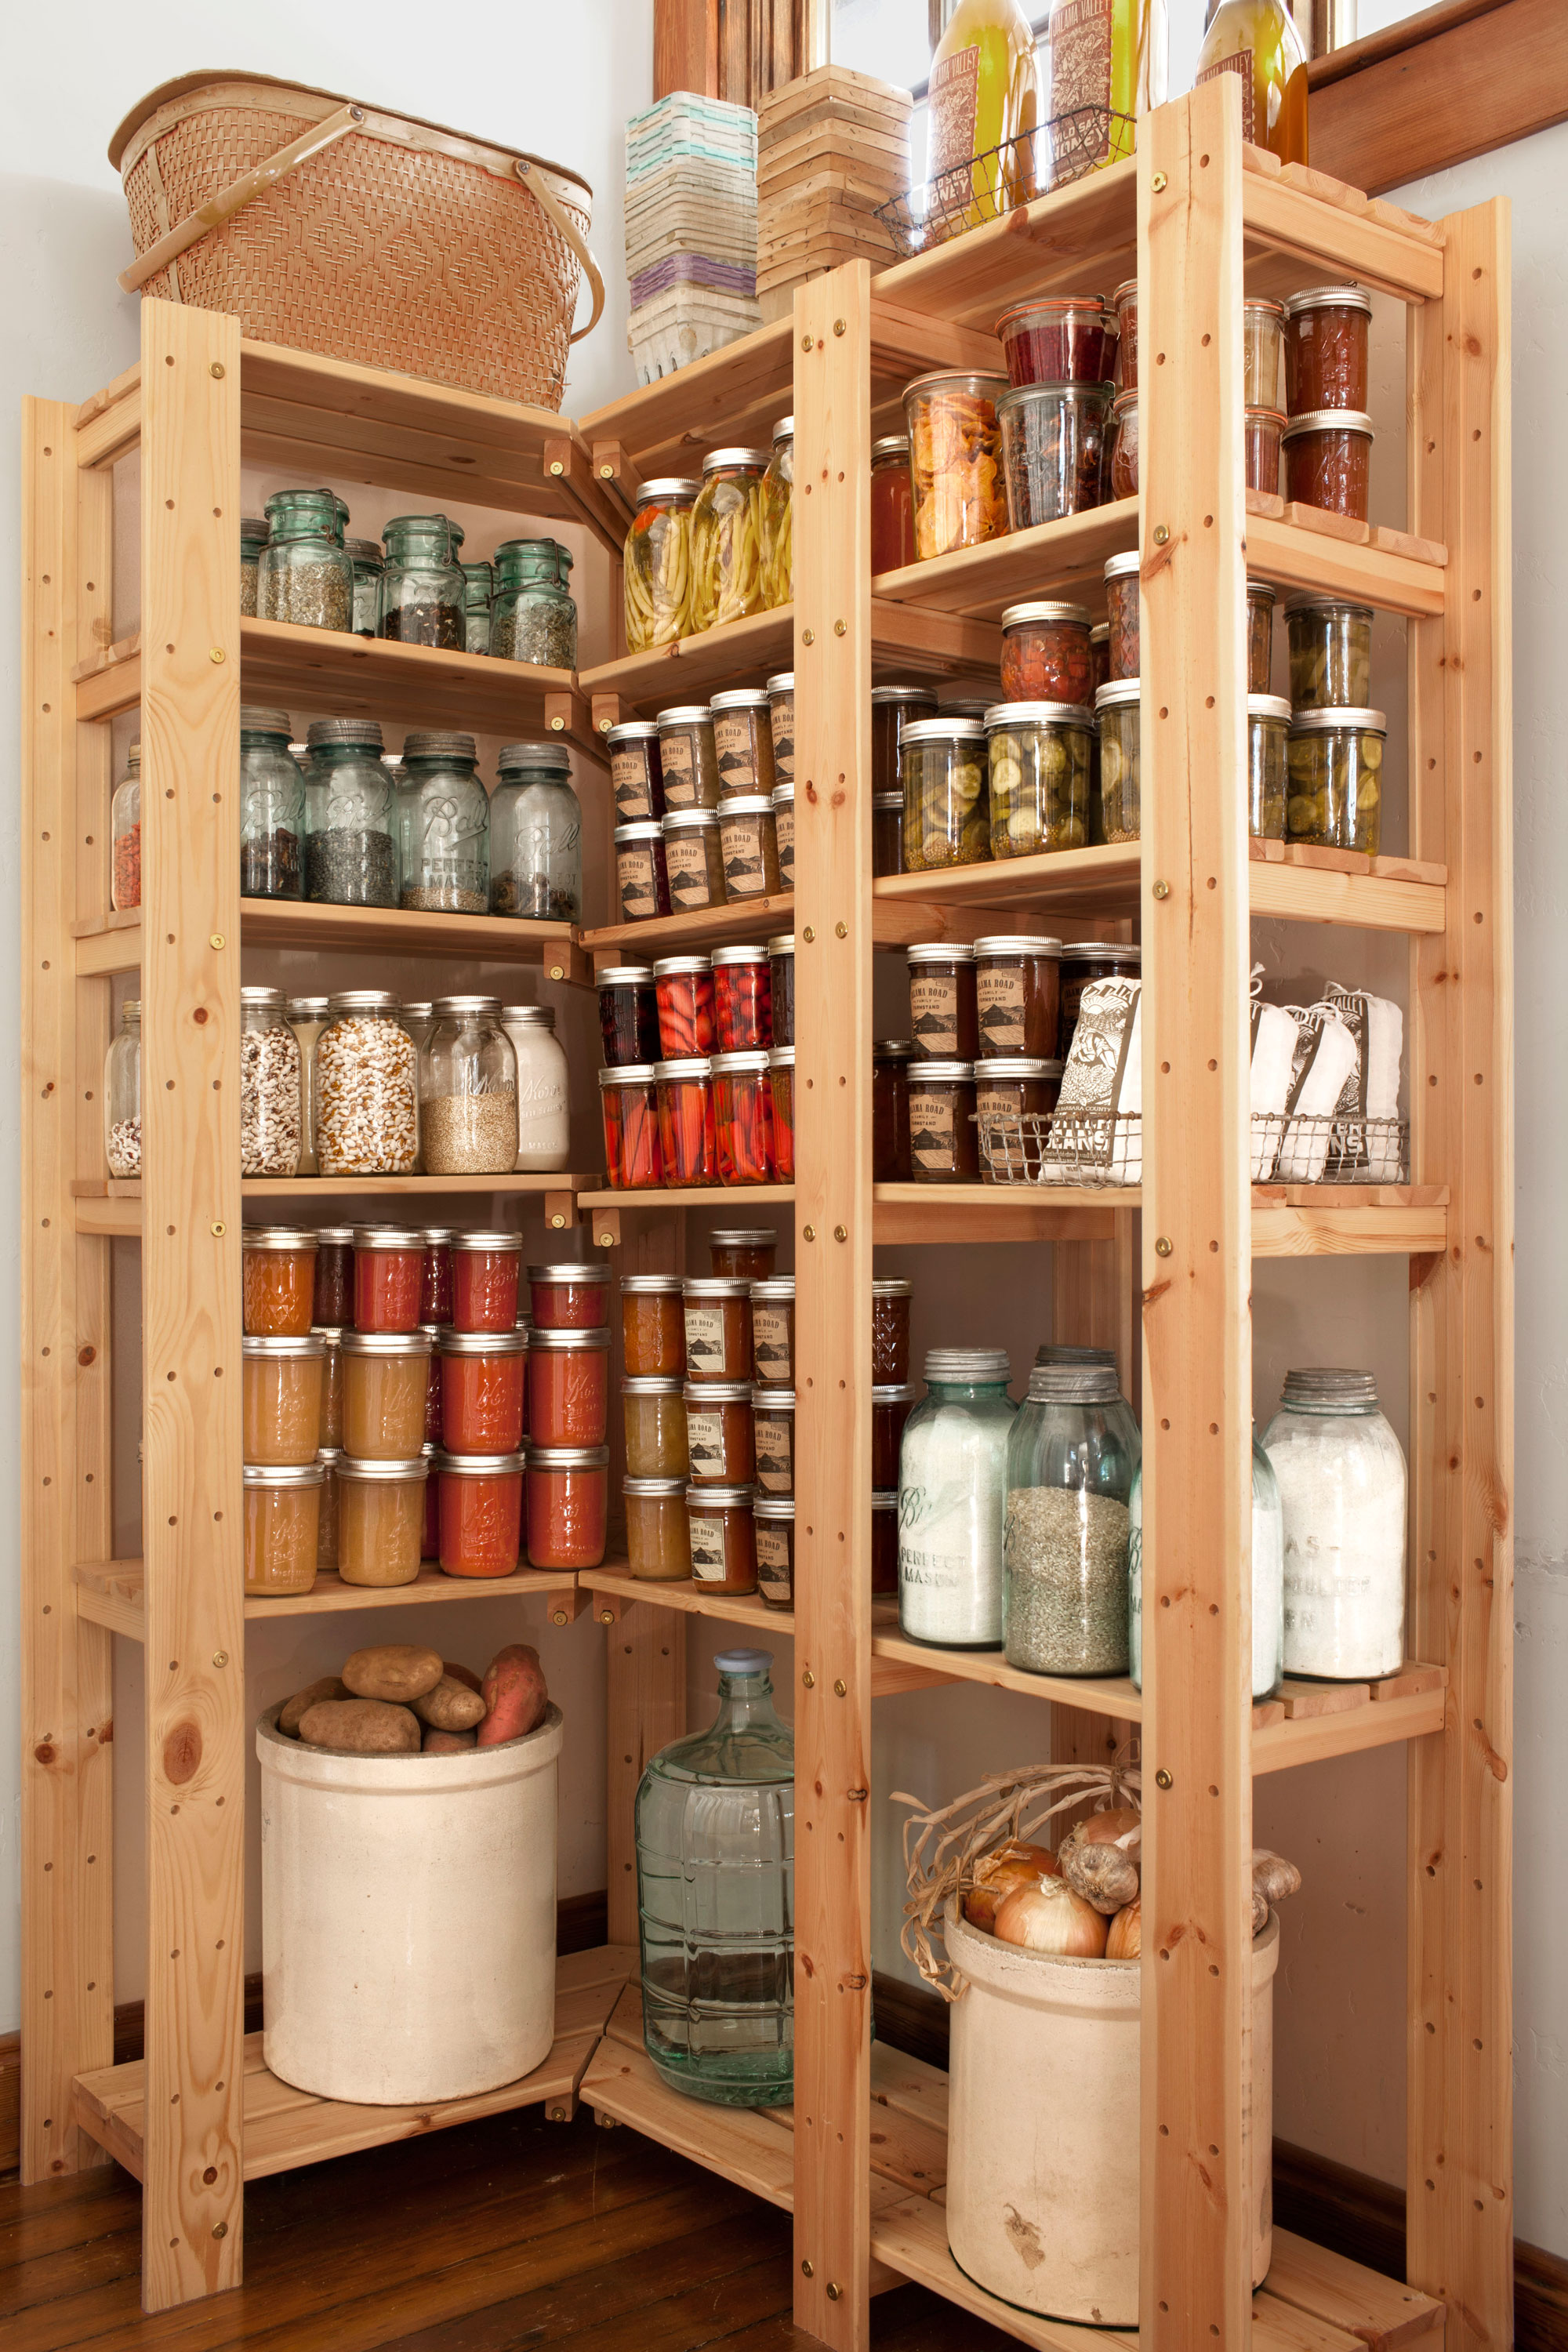 For Kitchen Organization 14 Smart Ideas For Kitchen Pantry Organization Pantry Storage Ideas